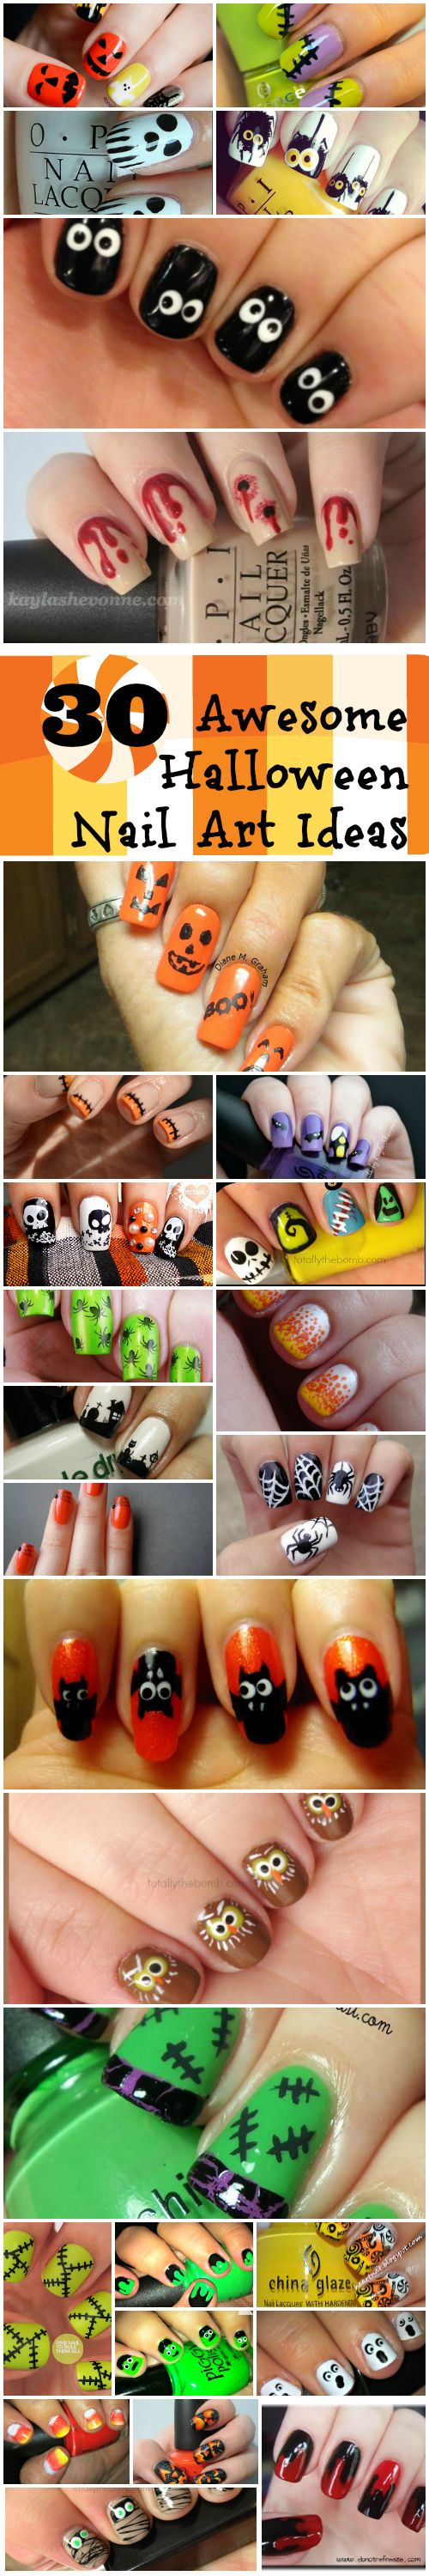 30-awesome-Halloween-Nail-Art-Ideas.jpg (500×3000)